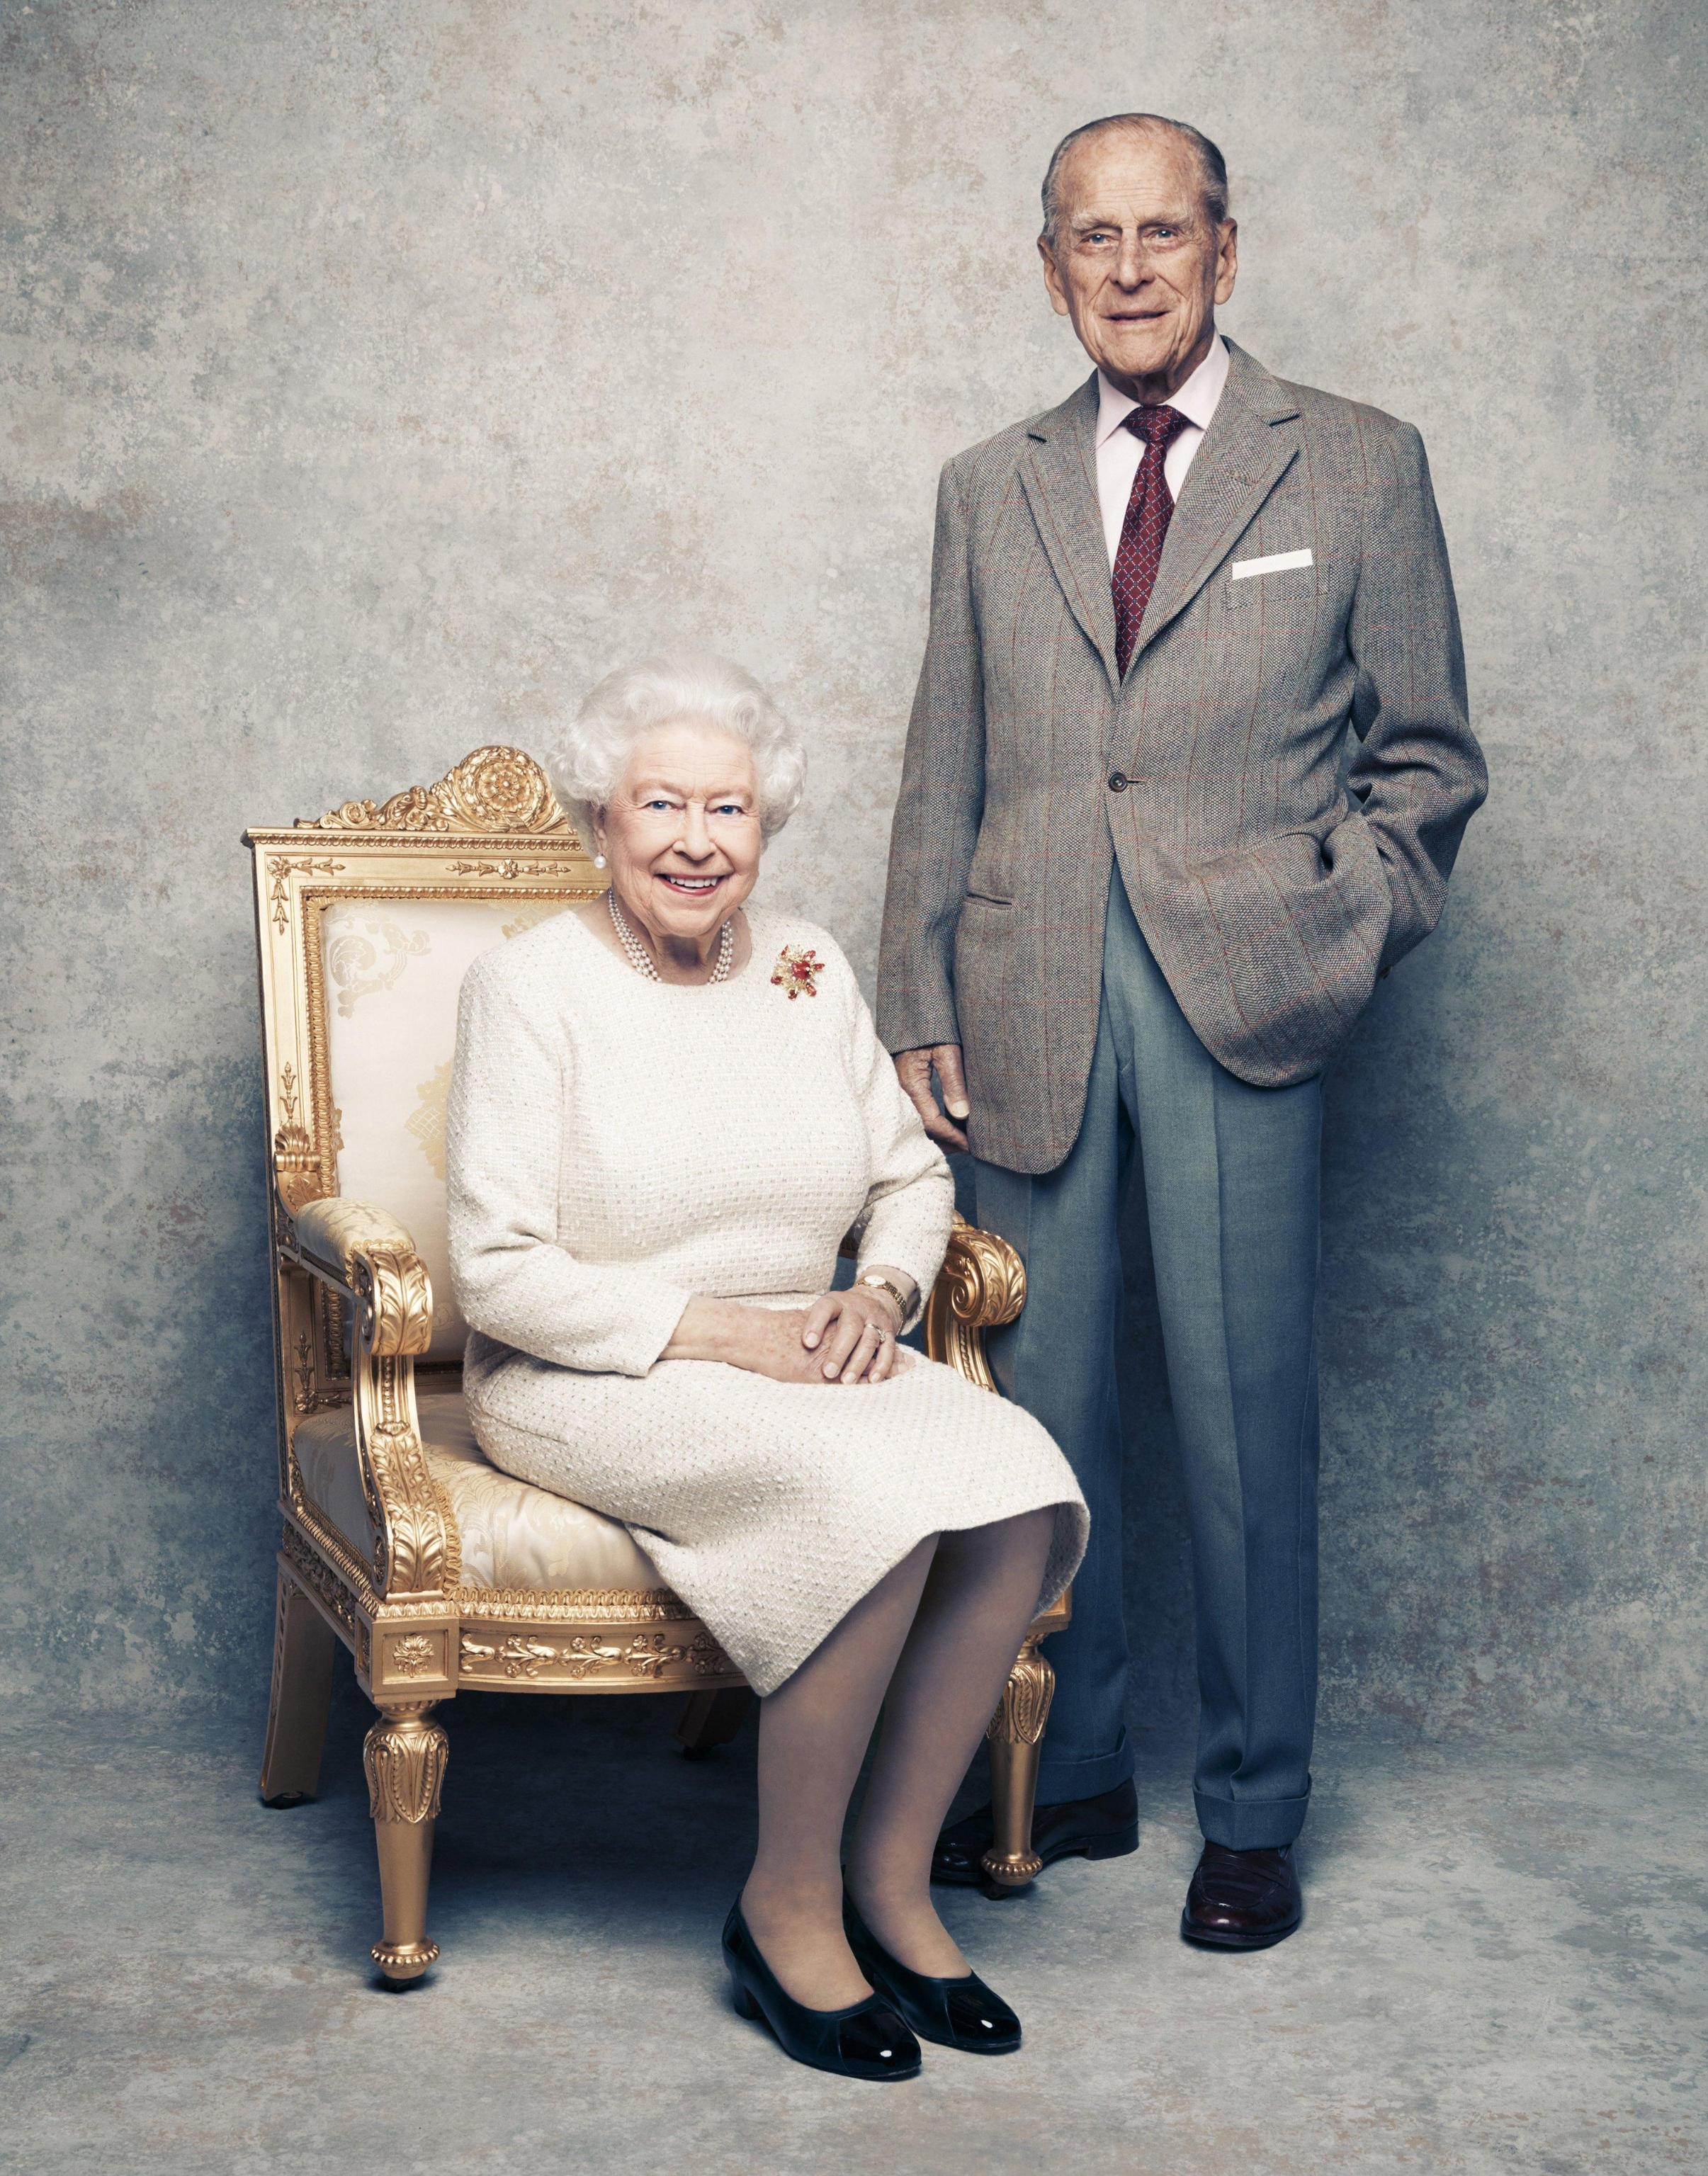 A new portrait of the Queen and Prince Philip 70th wedding anniversary